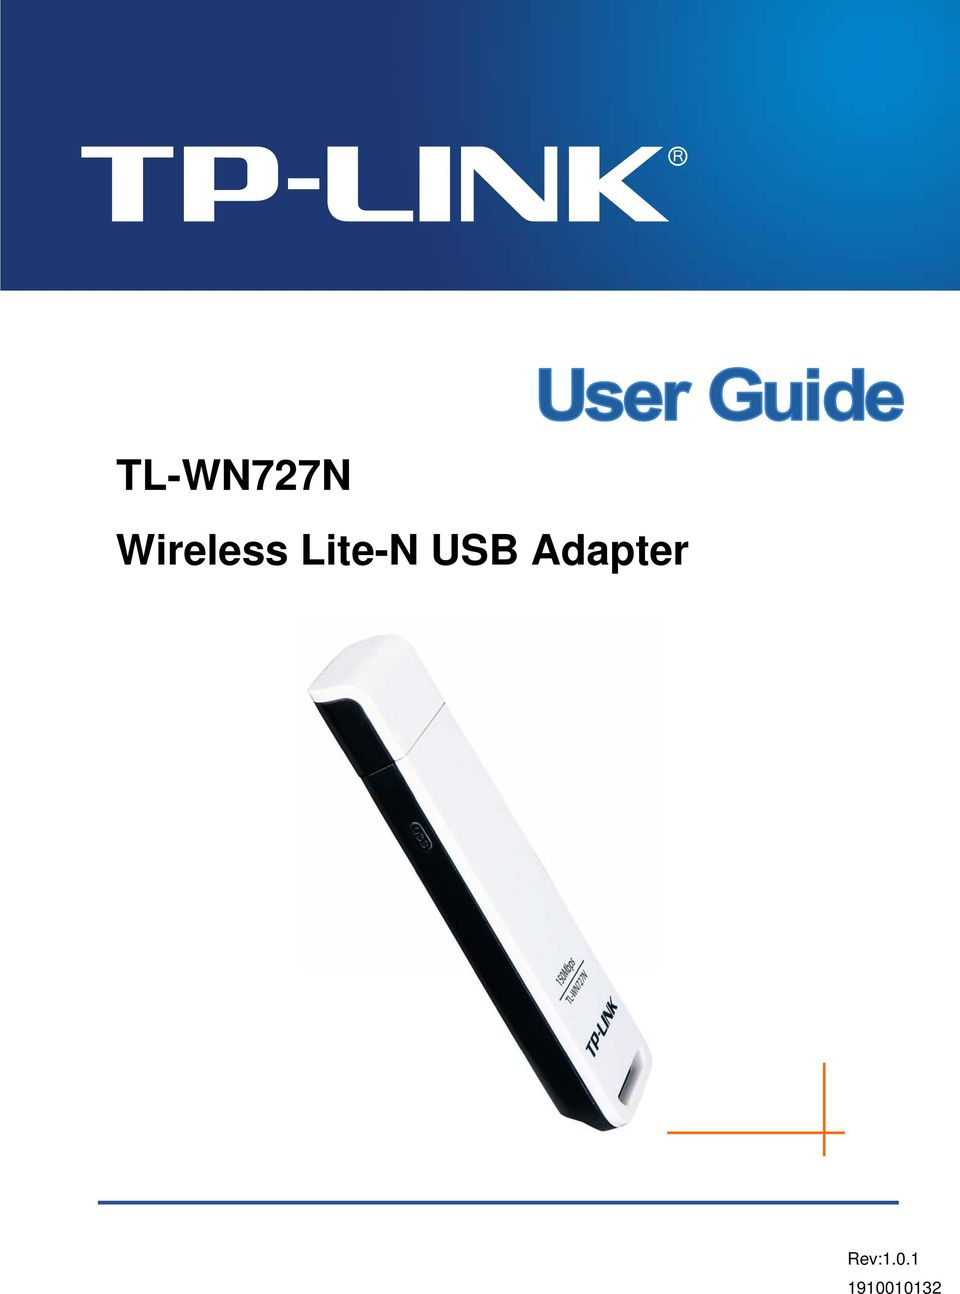 Tl Wn727n Wireless Lite N Usb Adapter Pdf Tp Link Wn727 2 Copyright Trademarks Specifications Are Subject To Change Without Notice Is A Registered Trademark Of Technologies Co Ltd